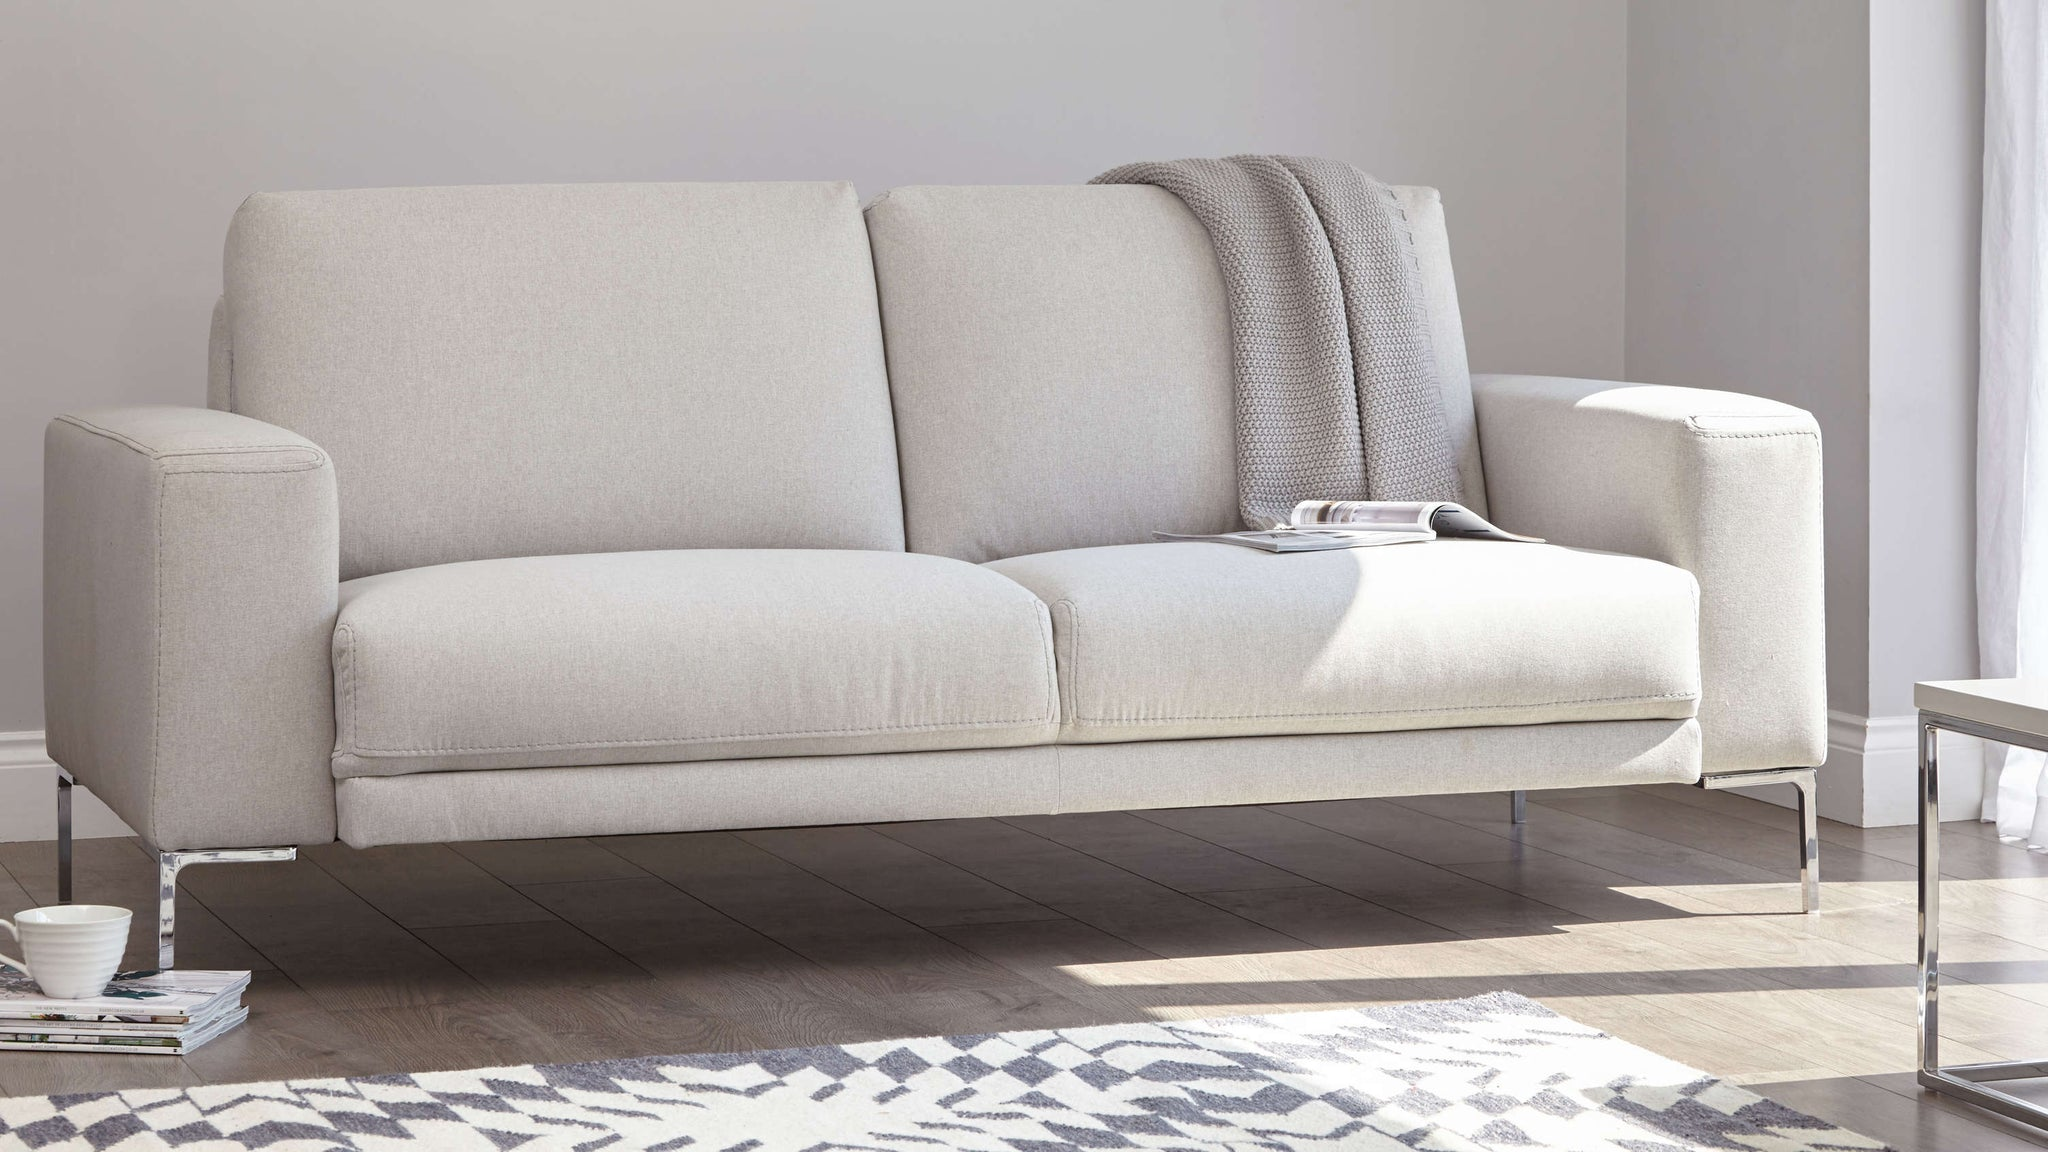 3 seater soft material sofa